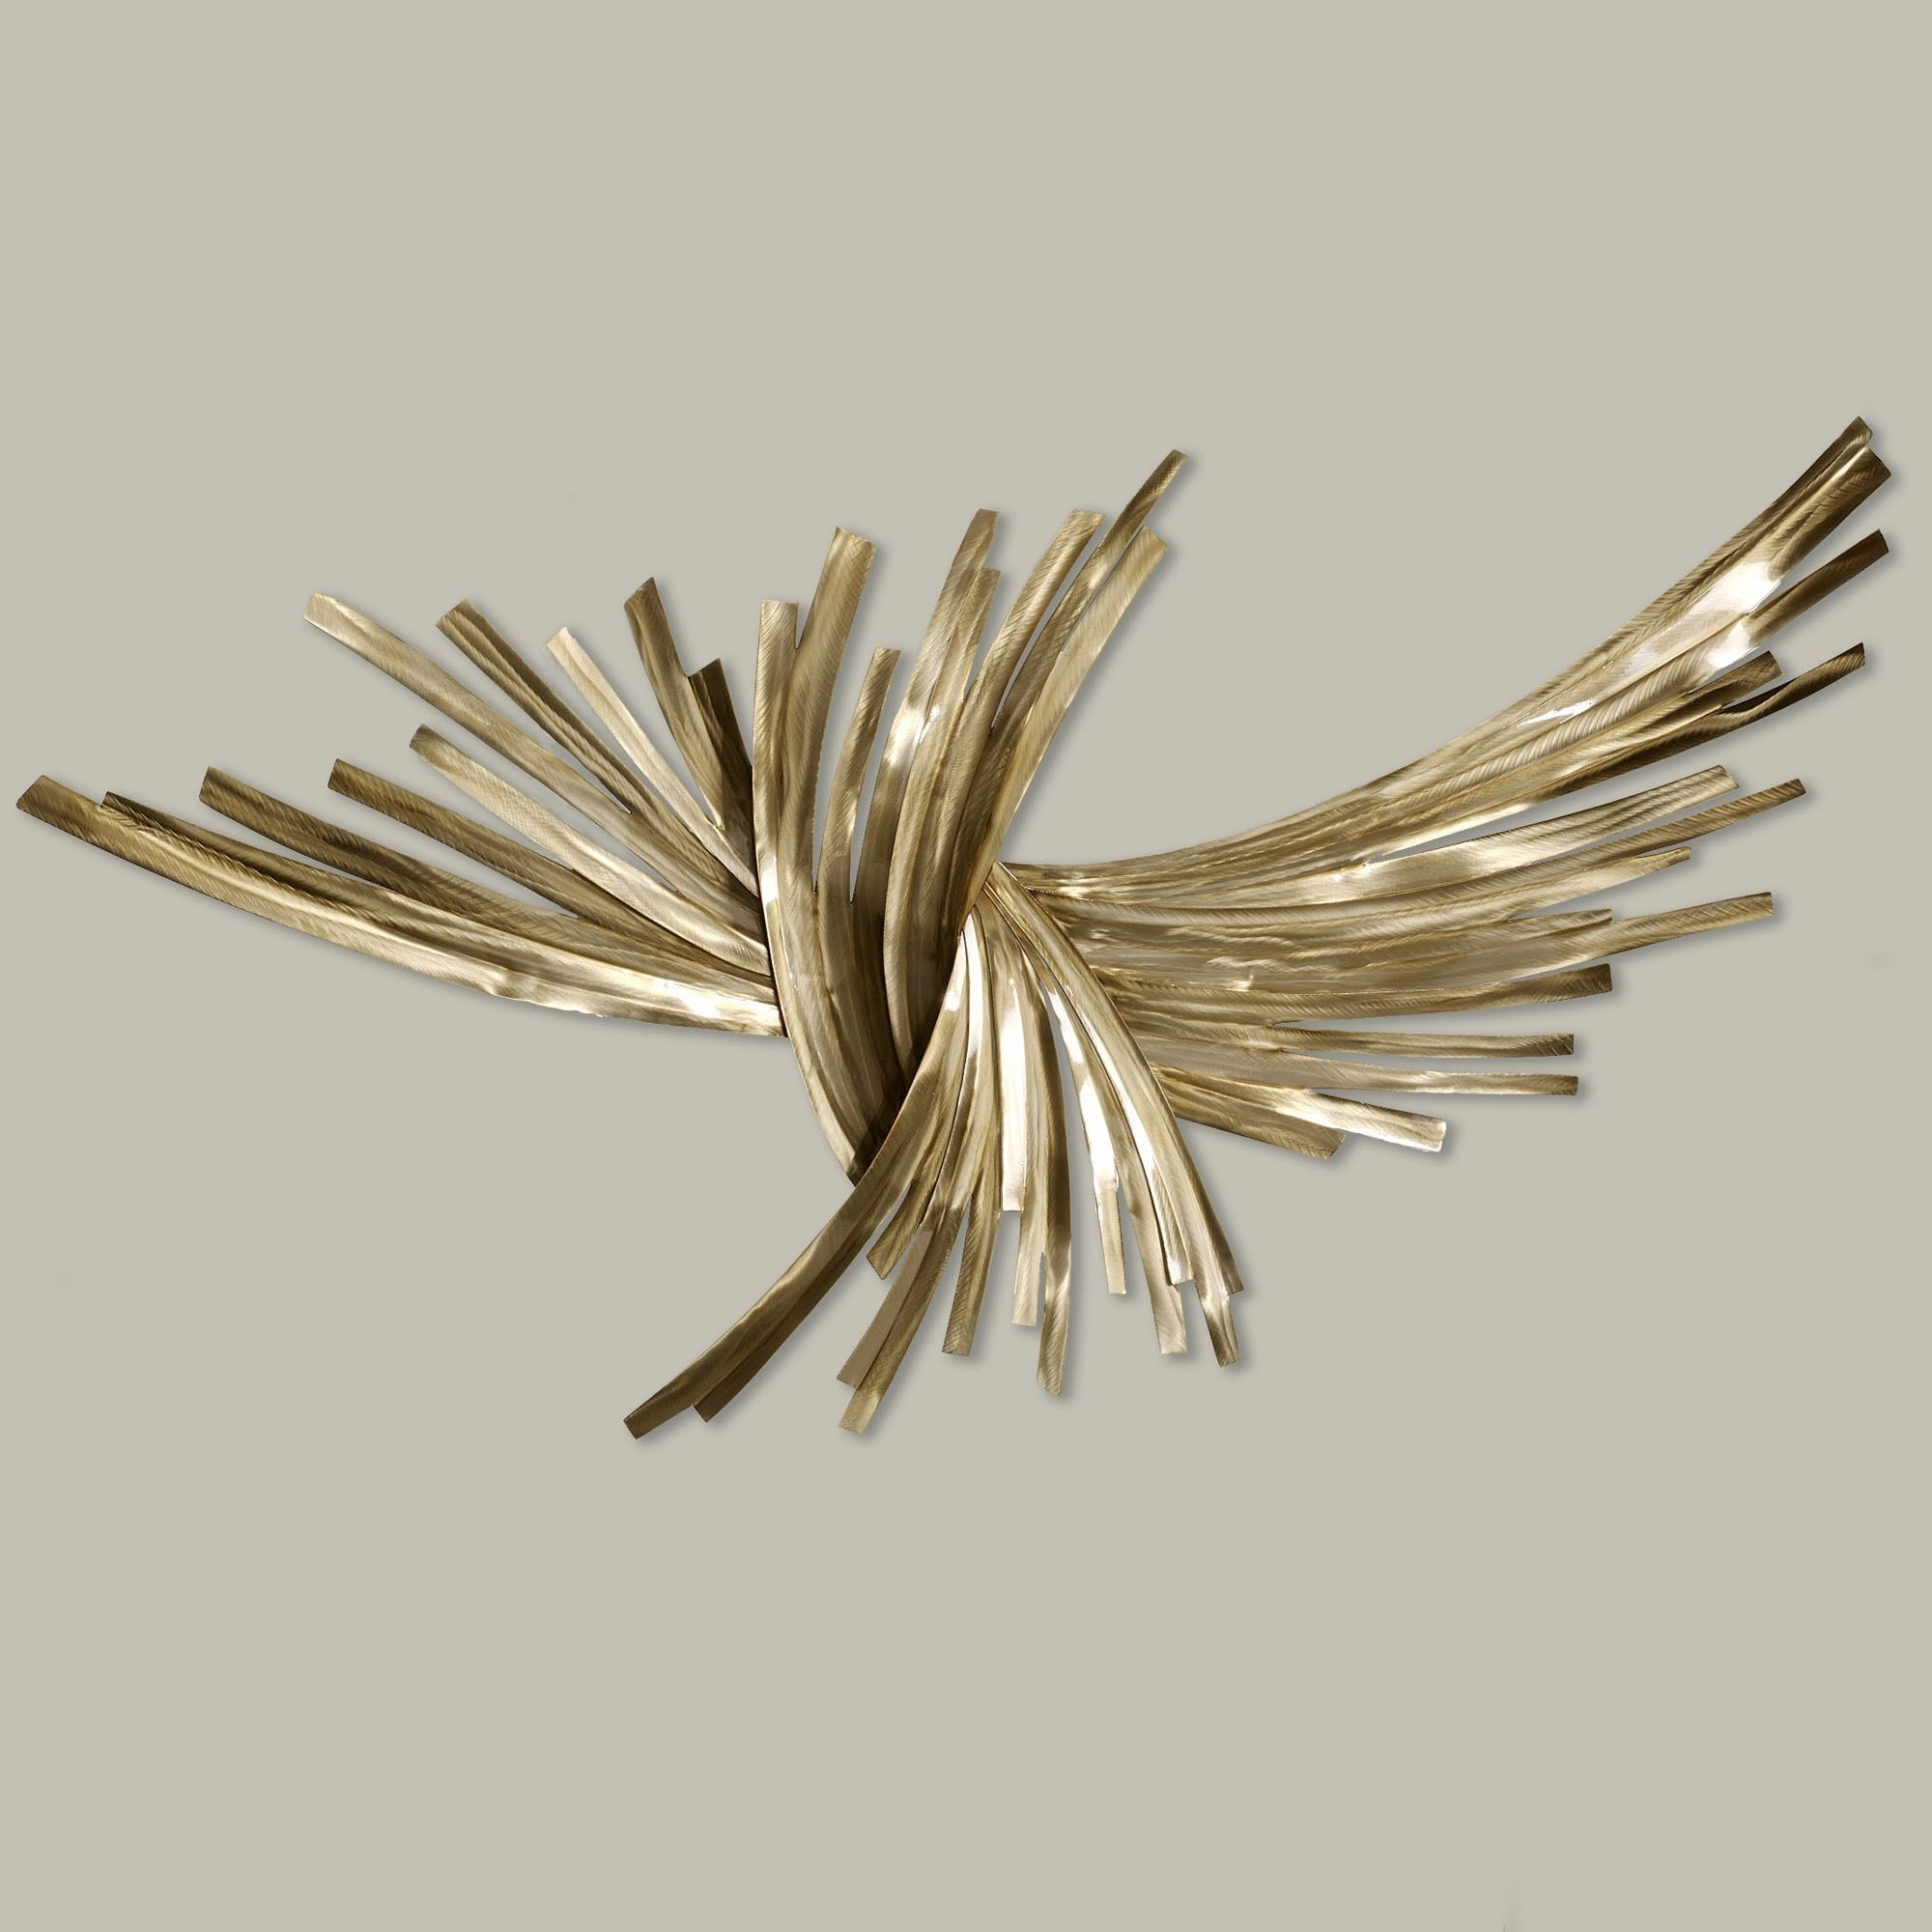 Trendy Gold Metal Wall Art Regarding Infinity Gold Metal Wall Sculpture (View 12 of 15)